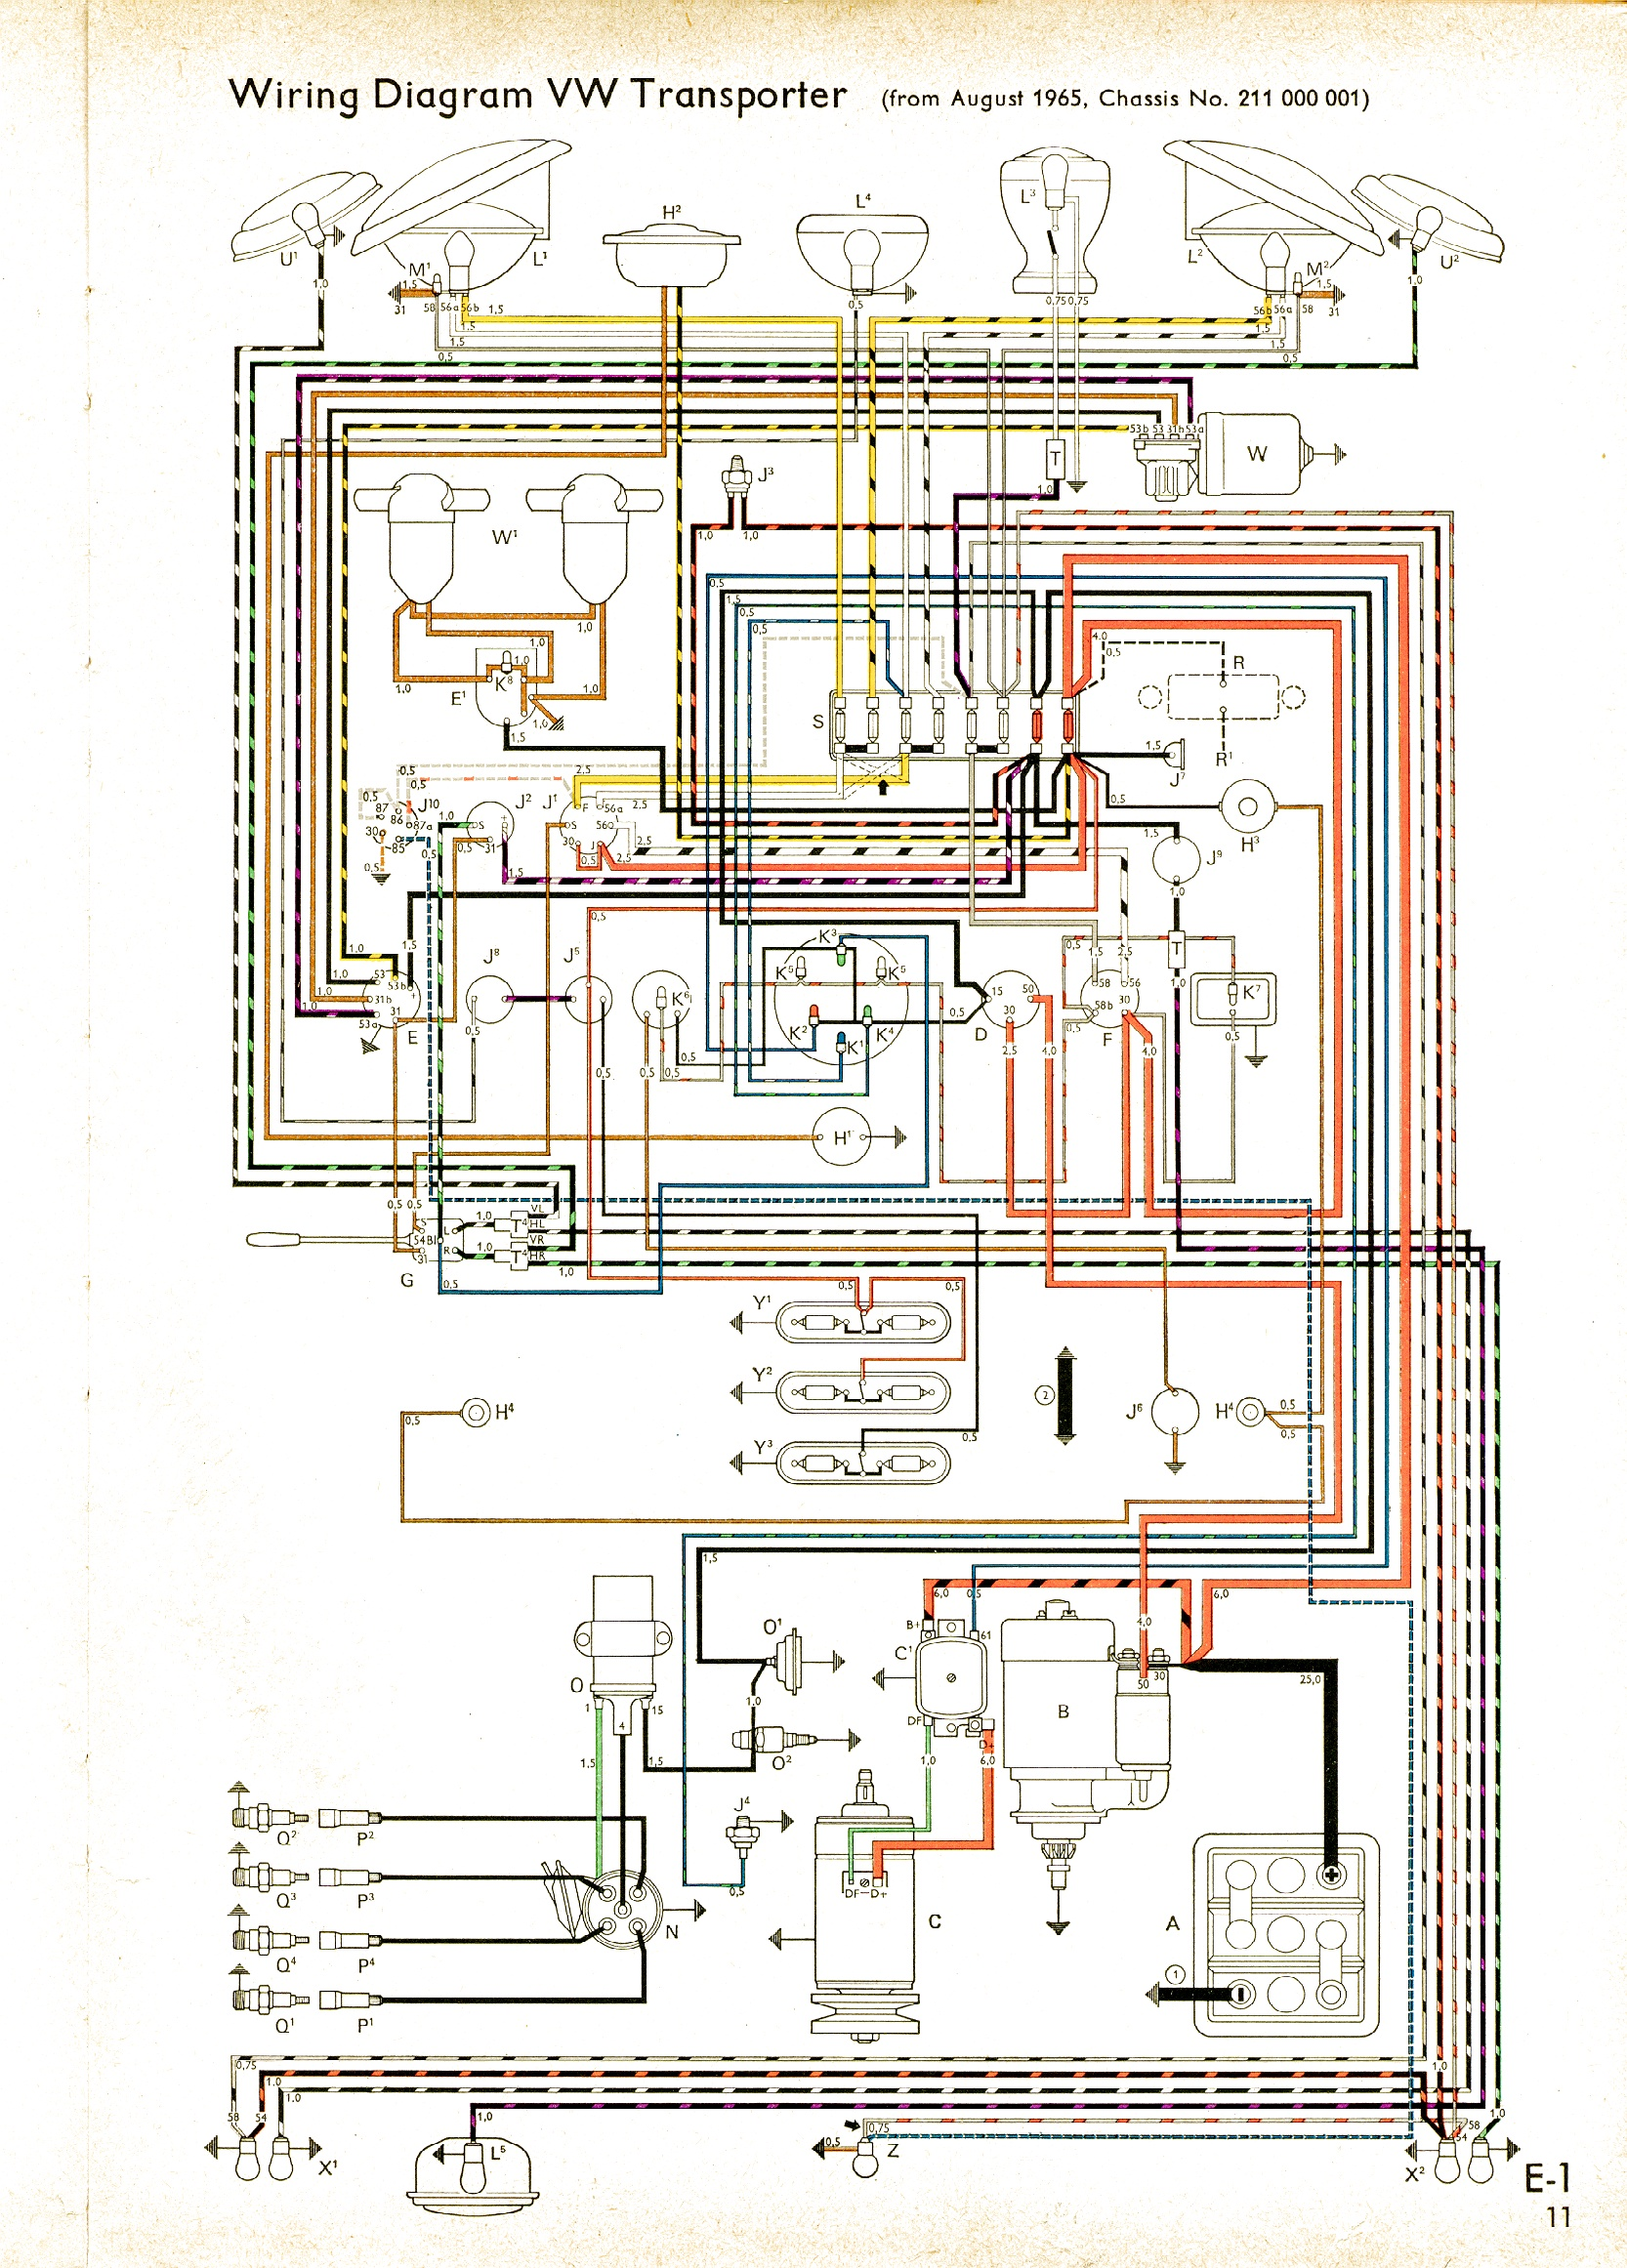 1967 vw beetle wiring diagram RIDAwNe 1967 vw bug wiring diagram on 1967 download wirning diagrams vw bug wiring diagram at arjmand.co